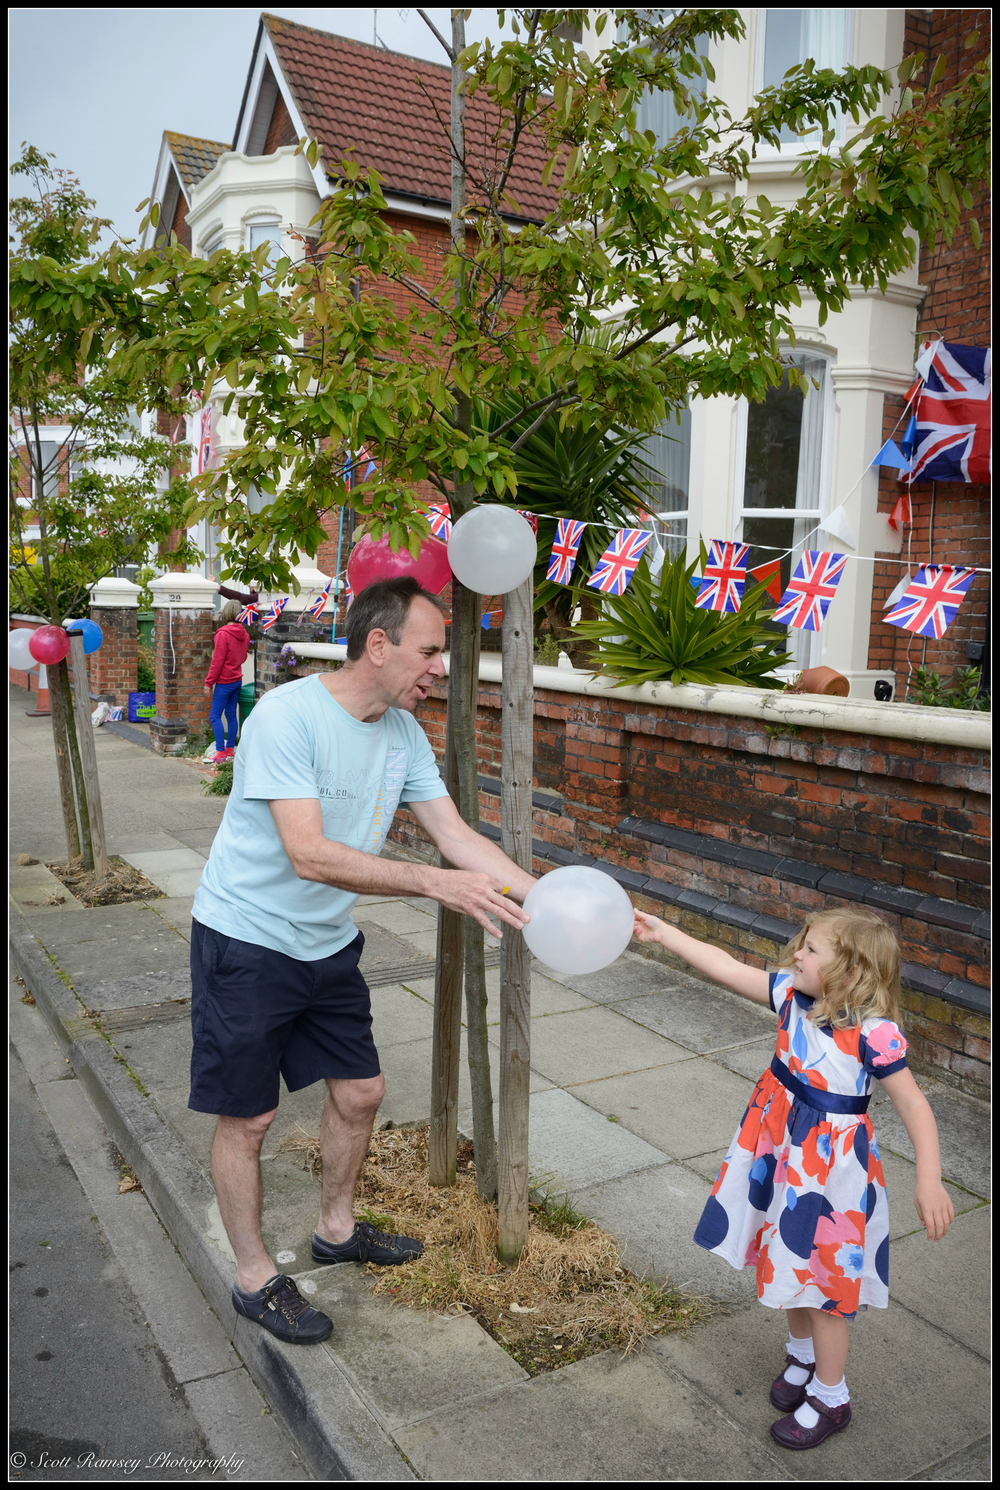 A resident of Nettlecombe Avenue, Southsea is handed a balloon from a young girl during preparations for VE Day 70th anniversary street party. © Scott Ramsey Photography.